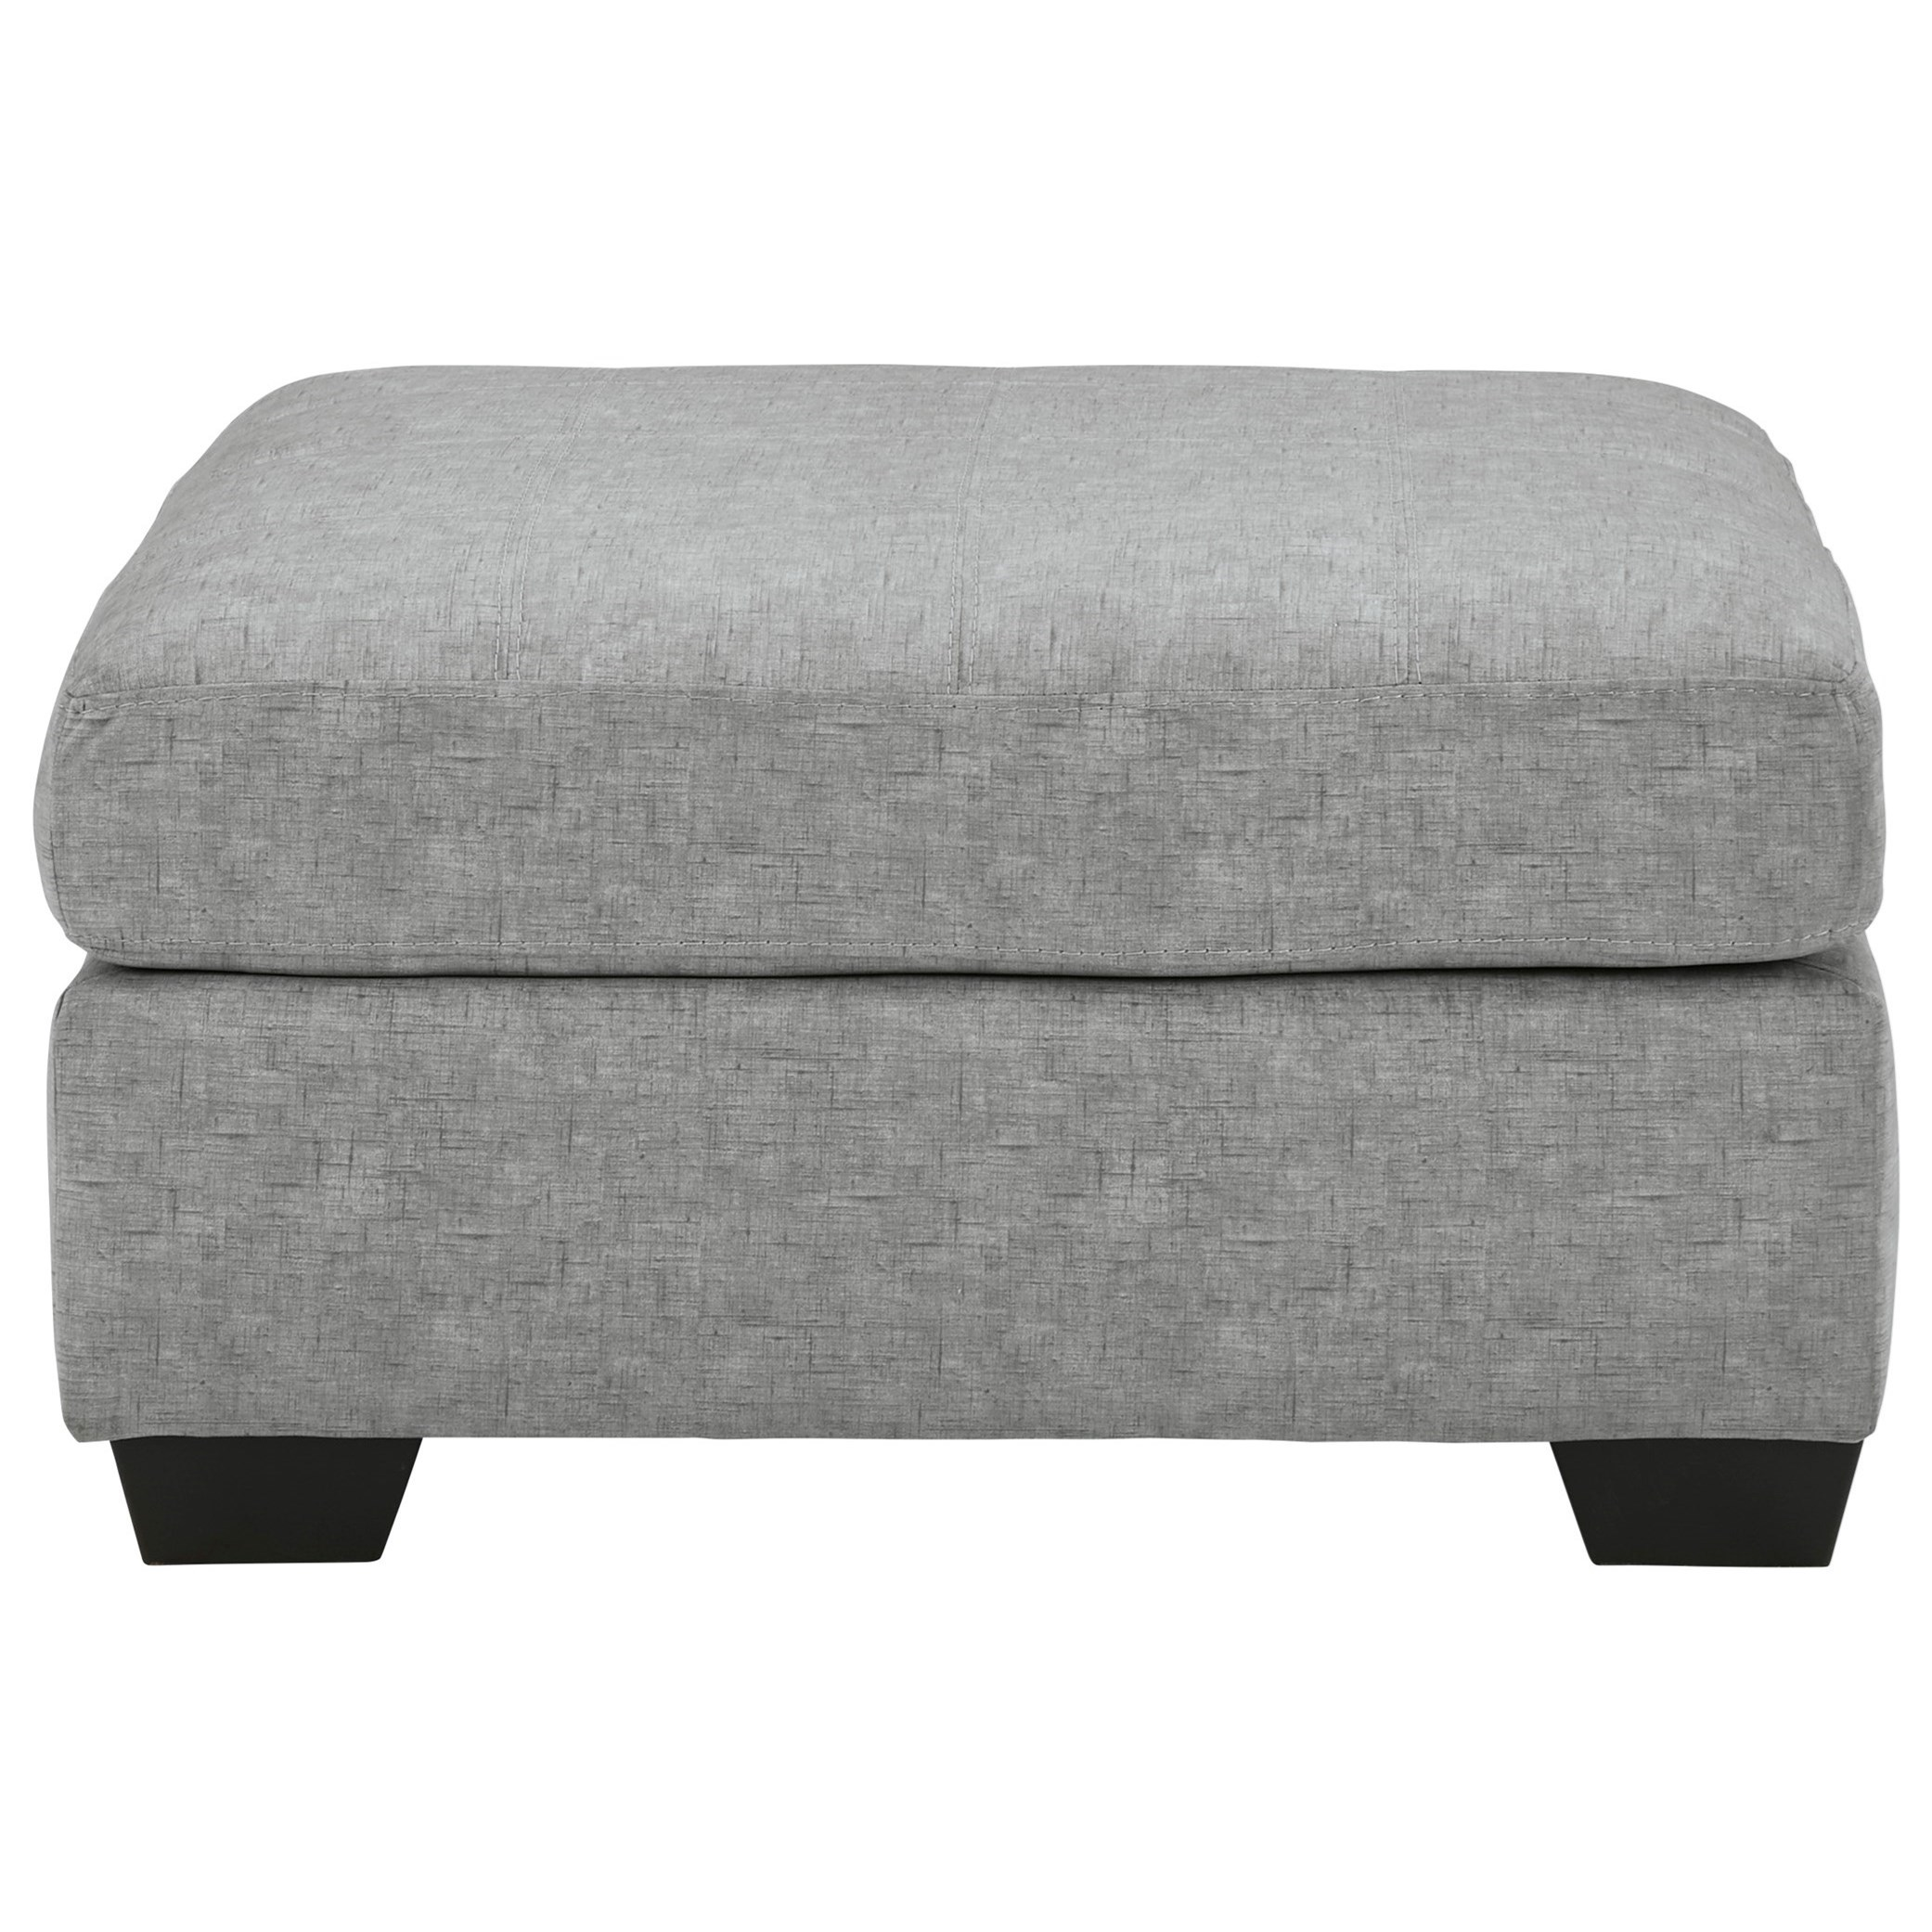 Falkirk Oversized Accent Ottoman by Benchcraft at Walker's Furniture